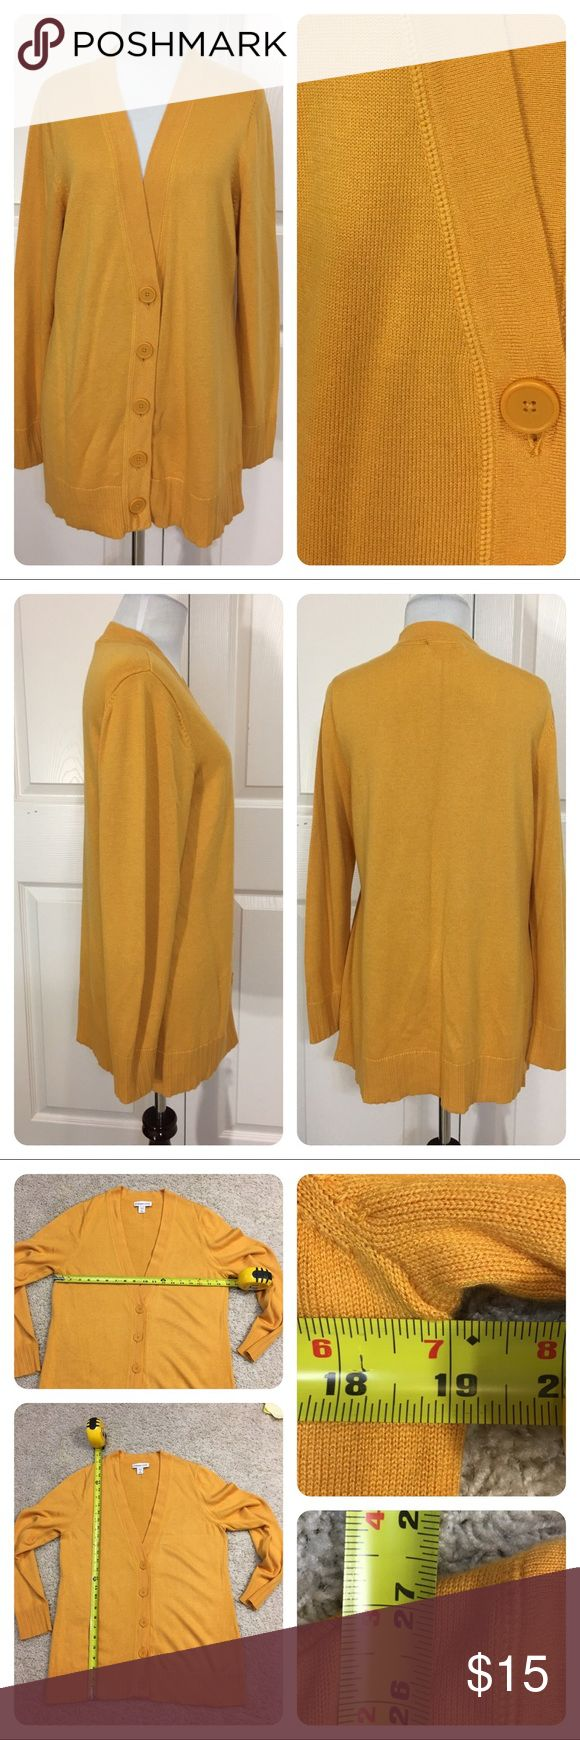 Coldwater Creek yellow gold cardigan. Perfect layering piece!  Great Coldwater Creek yellow gold button front cardigan. So comfortable. No flaws noted. Coldwater Creek Sweaters Cardigans